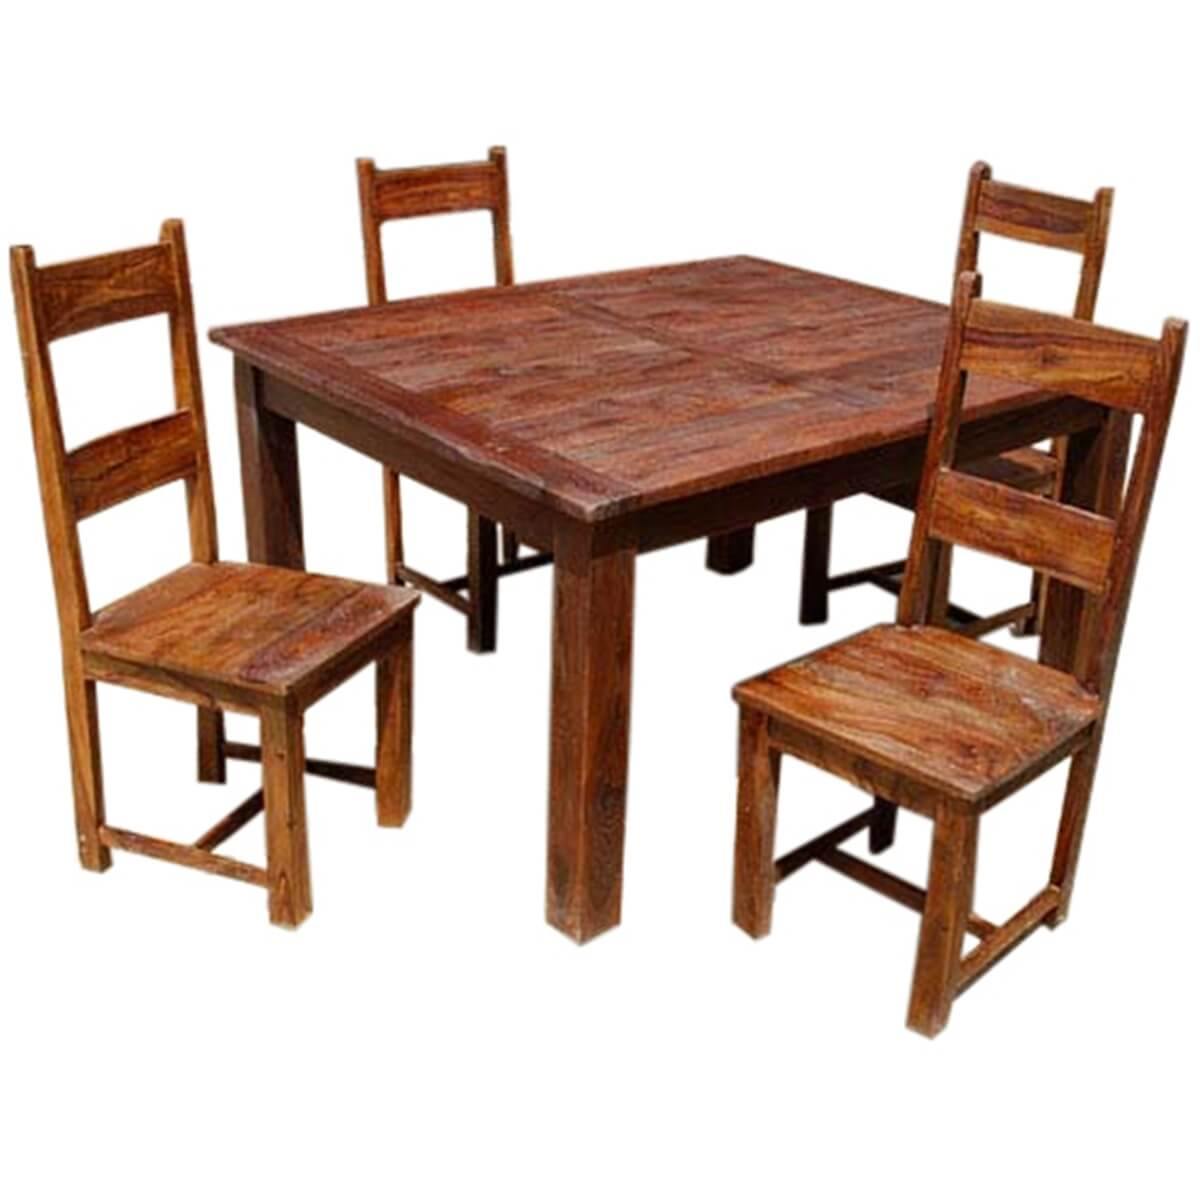 Wood Dinette Tables ~ Rustic solid wood appalachian dining room table chair set